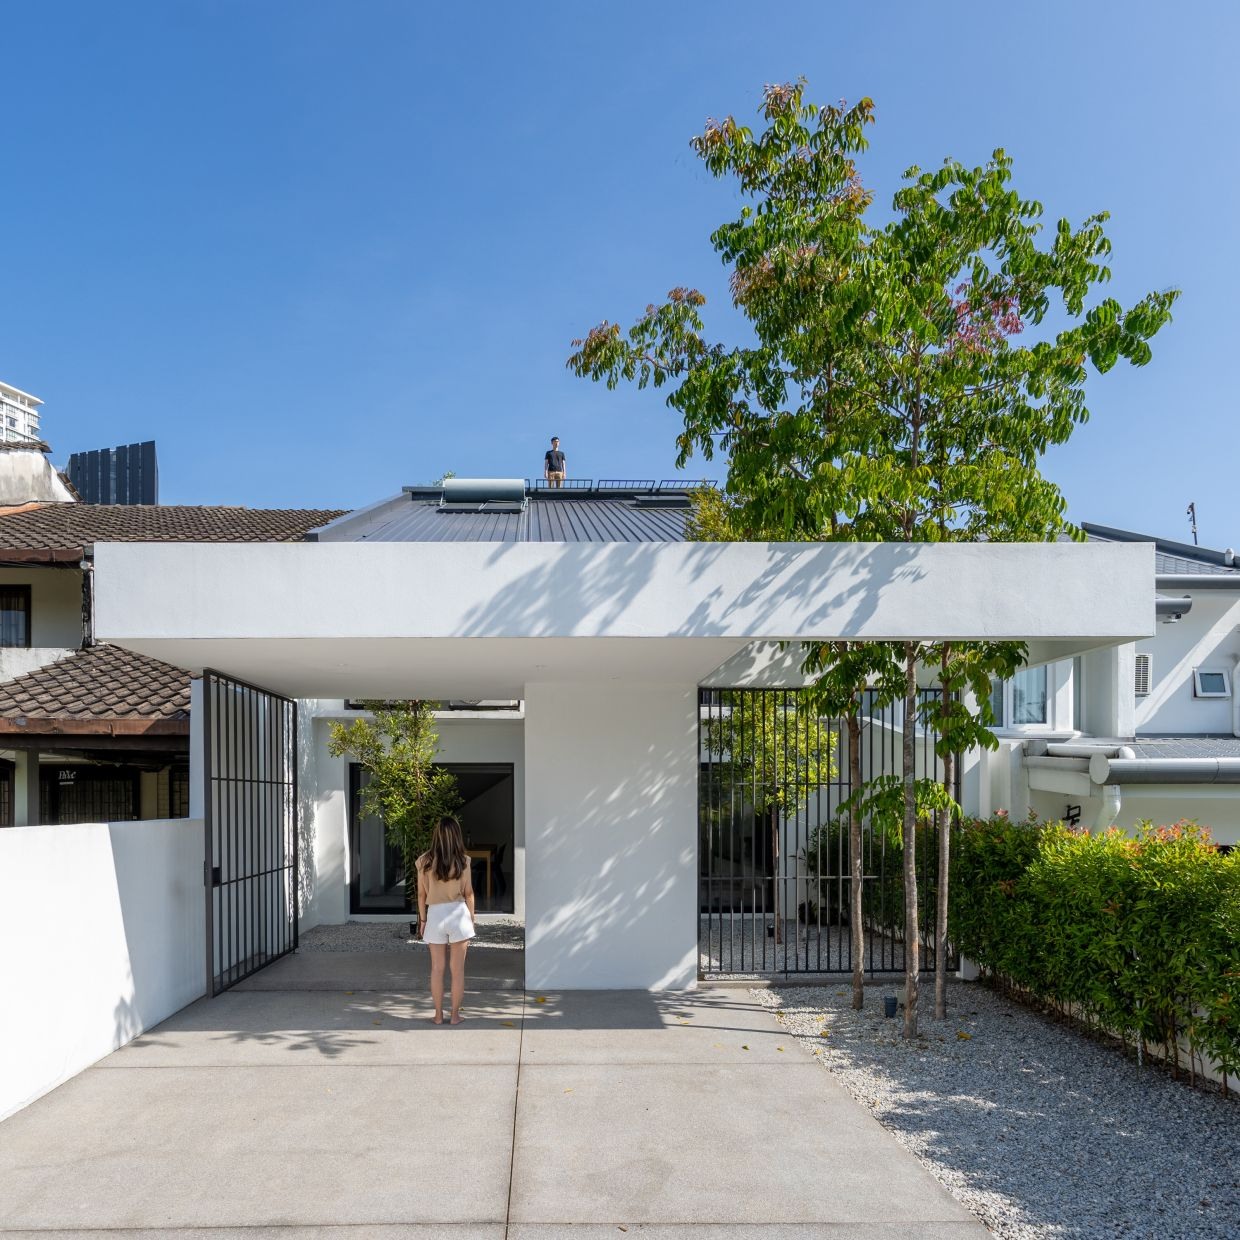 The facade of the house now is a pleasant contrast in relation to its surroundings, and the